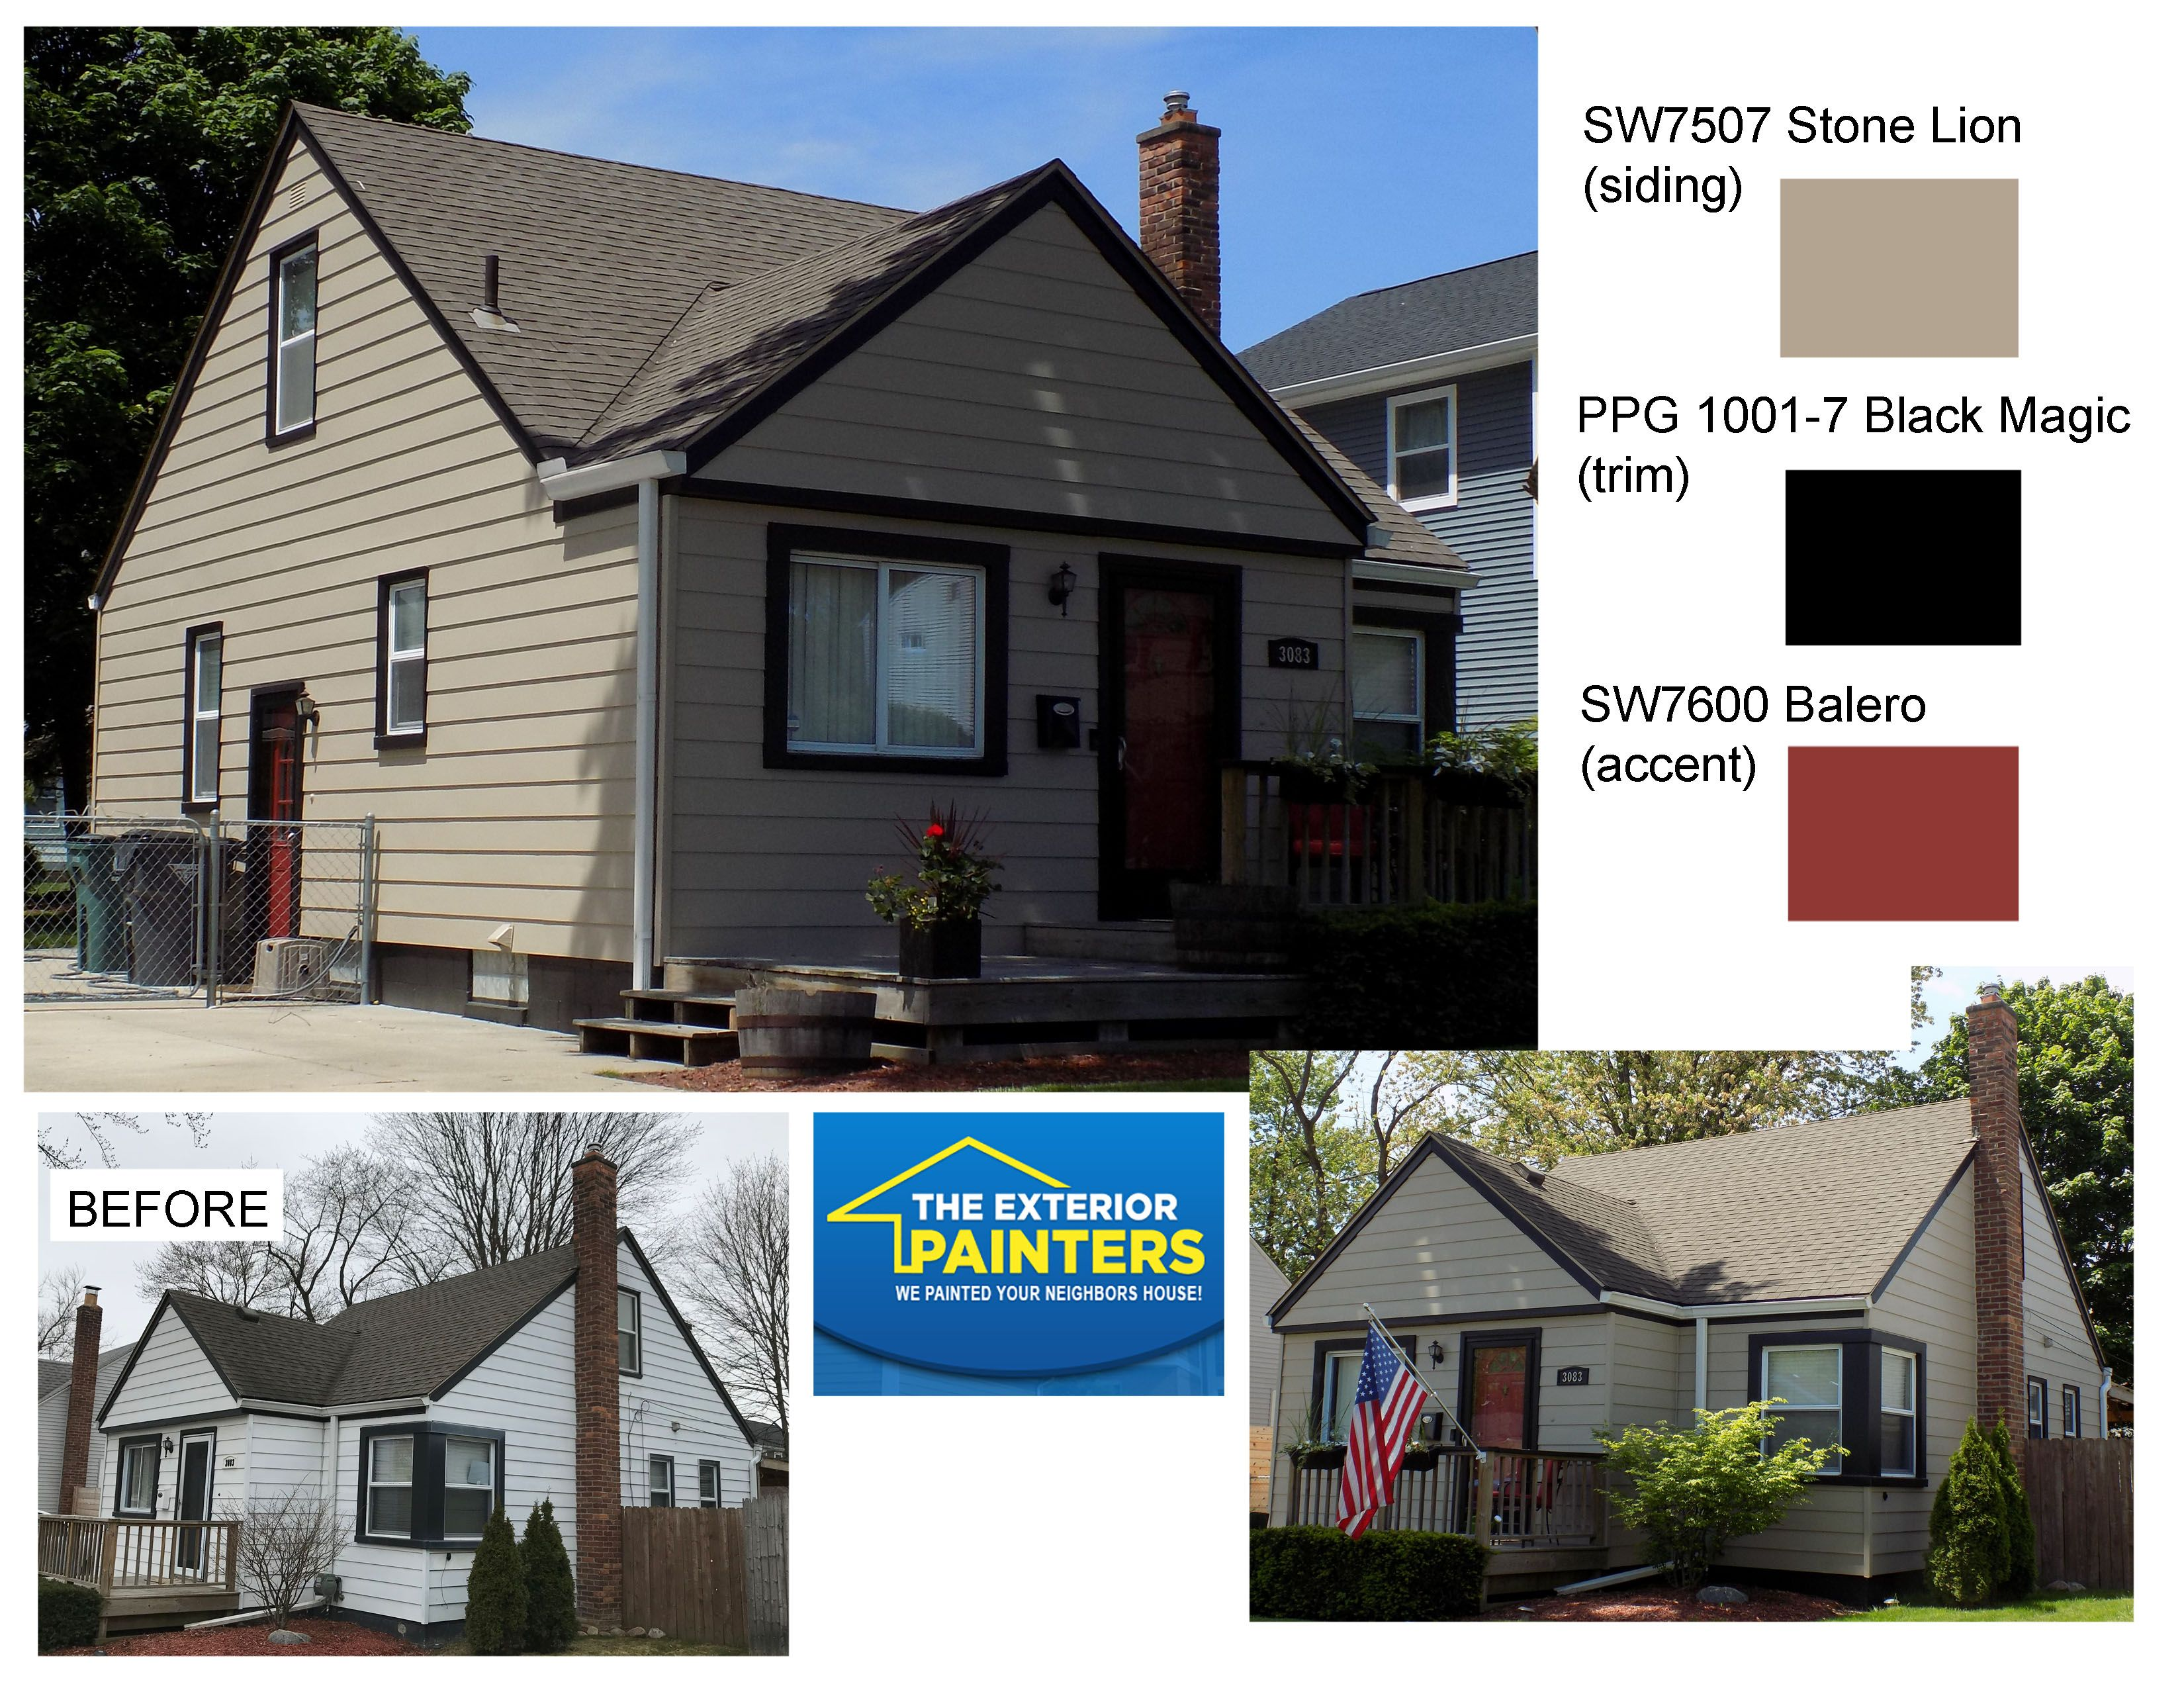 Sherwin Williams Stone Lion And Balero With Ppg Black Magic House Paint Exterior Exterior Painters House Exterior